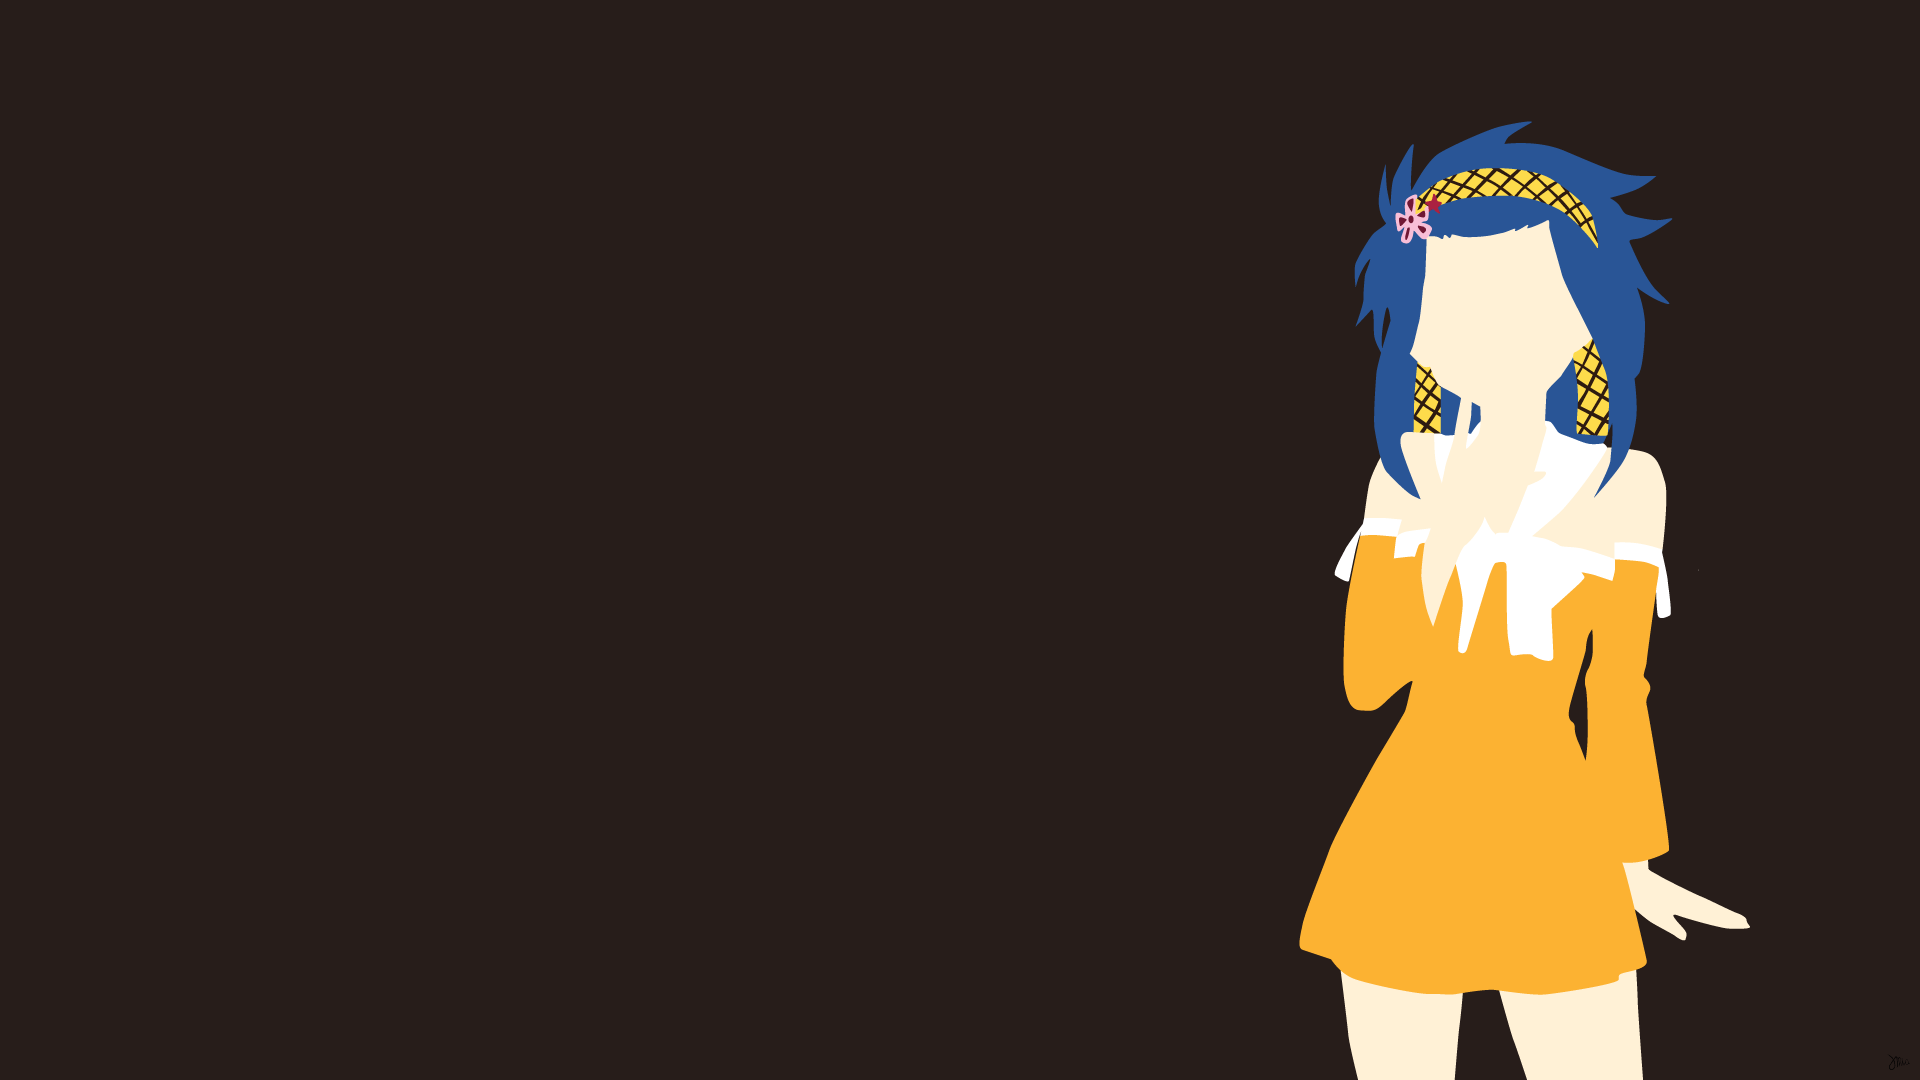 fairy tail minimalist wallpaper - photo #17